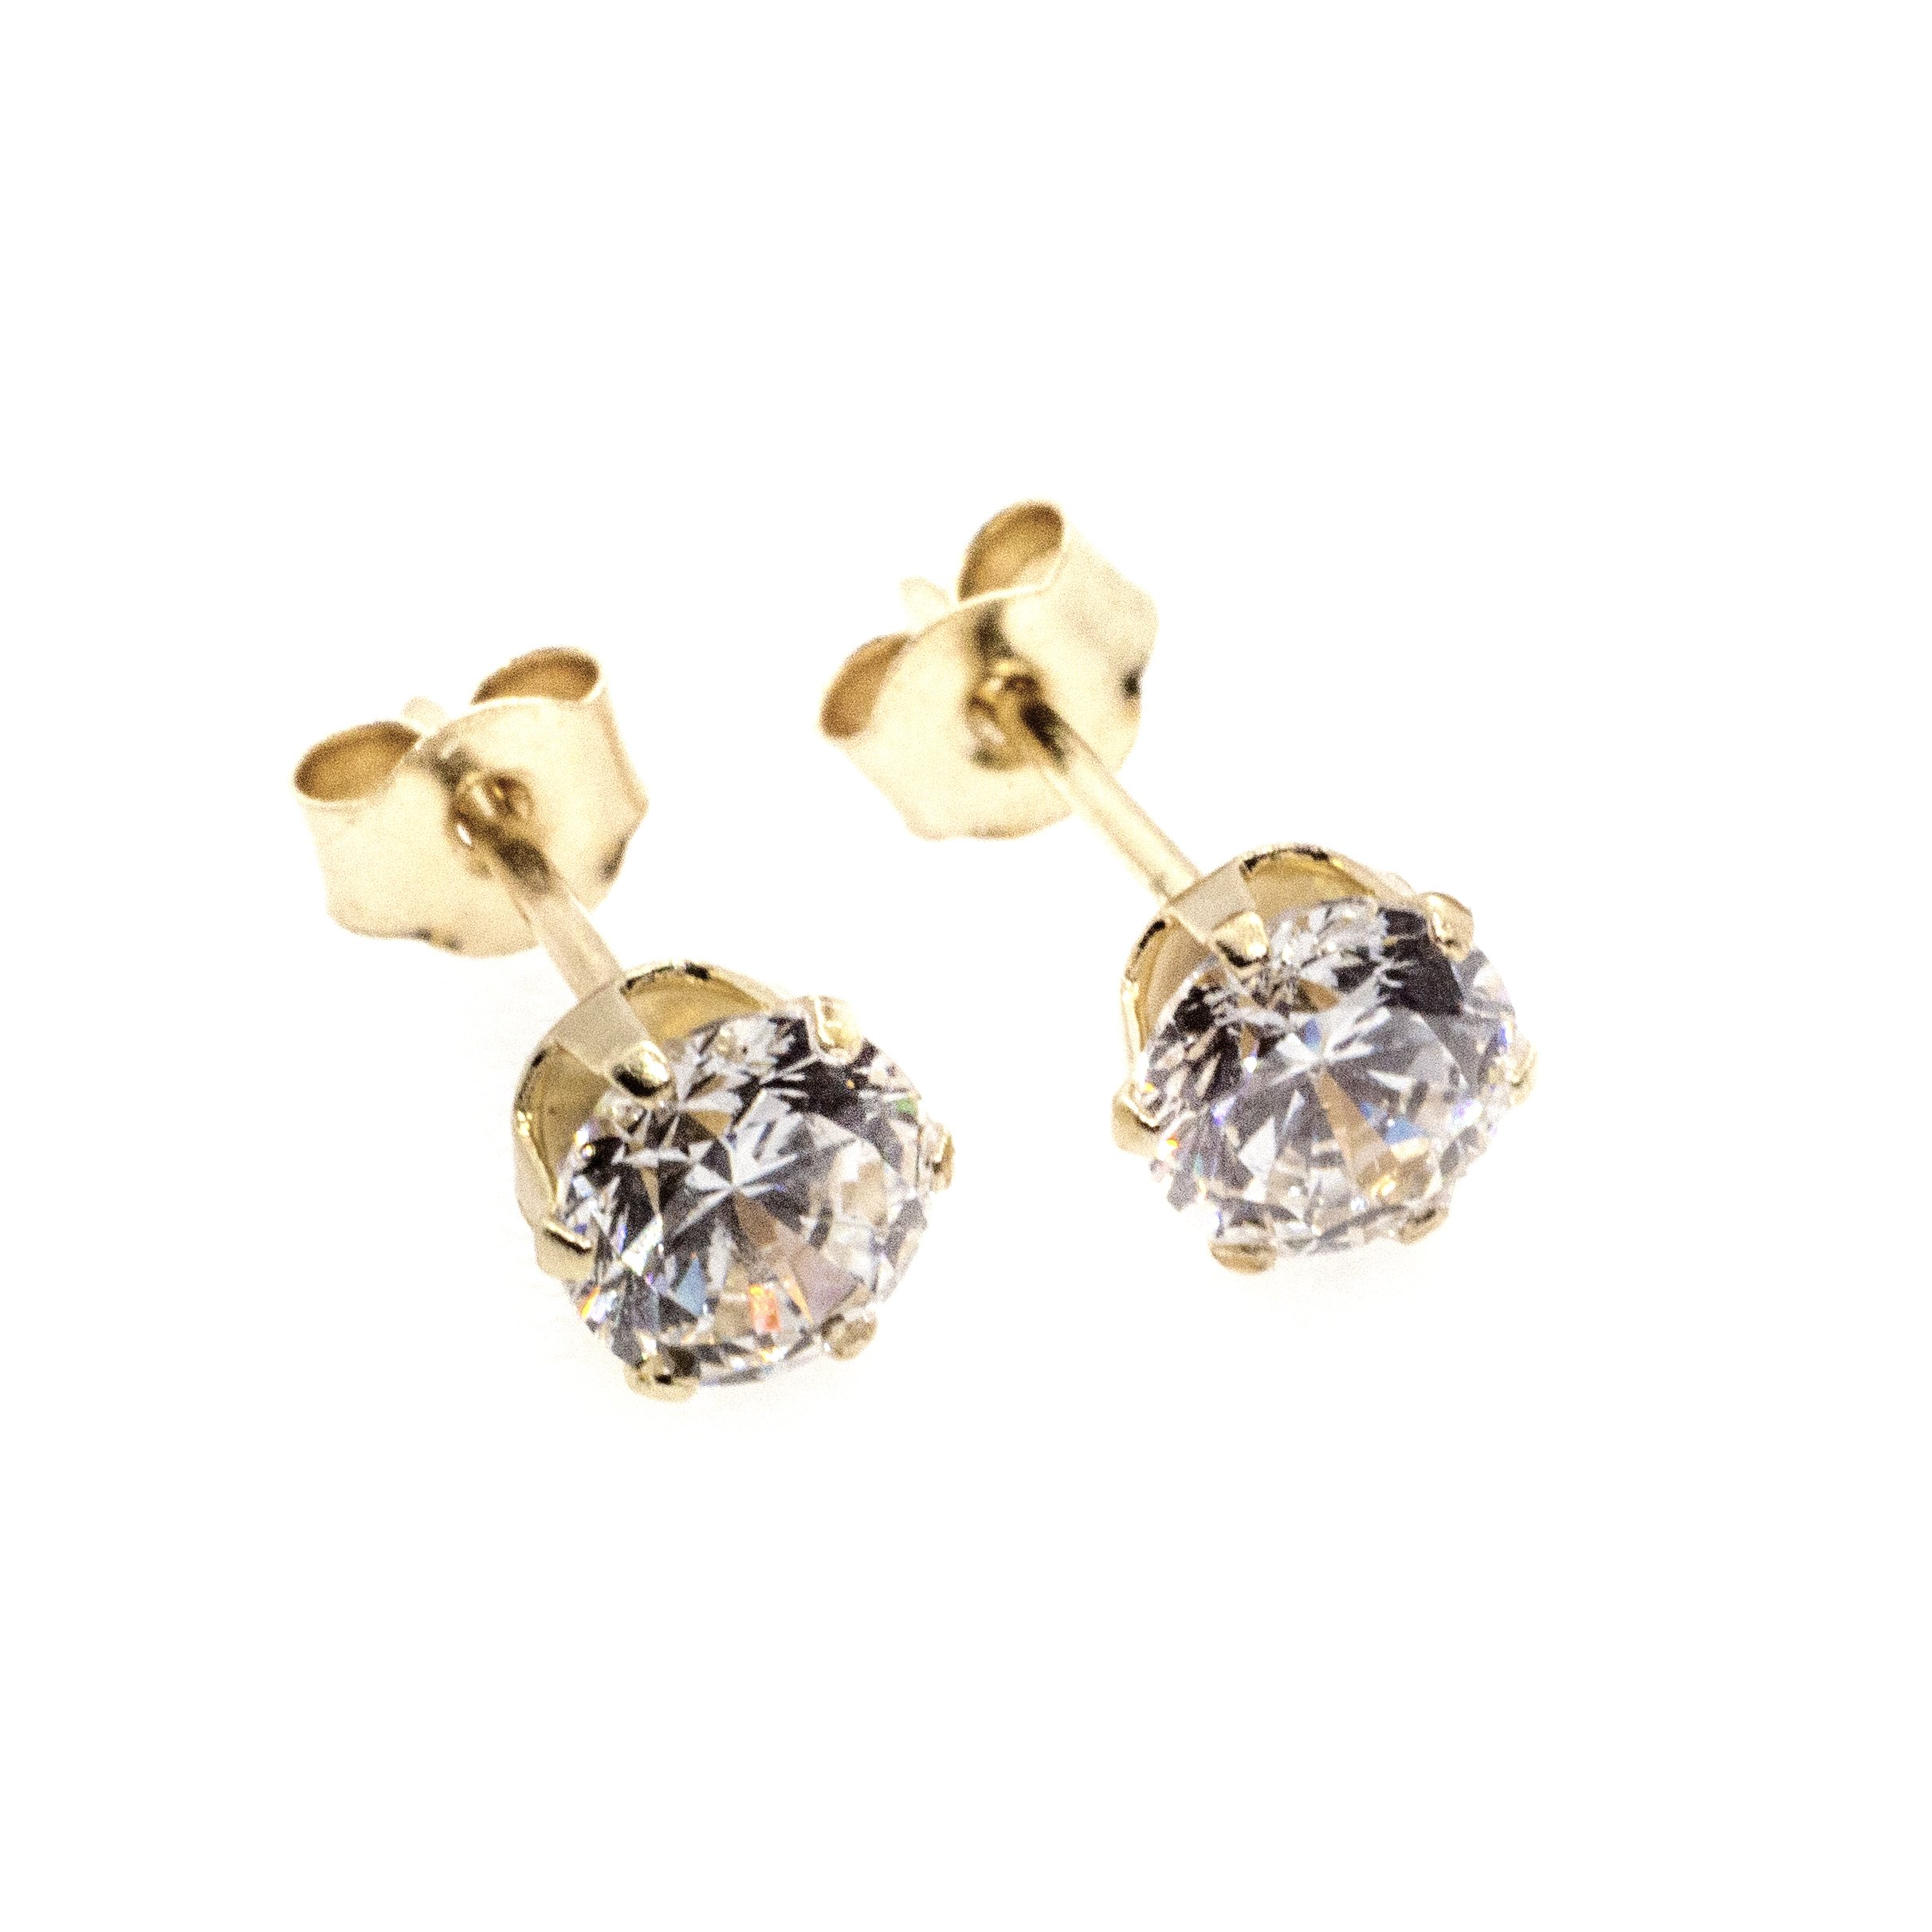 3mm CZ stud earrings 9ct yellow gold